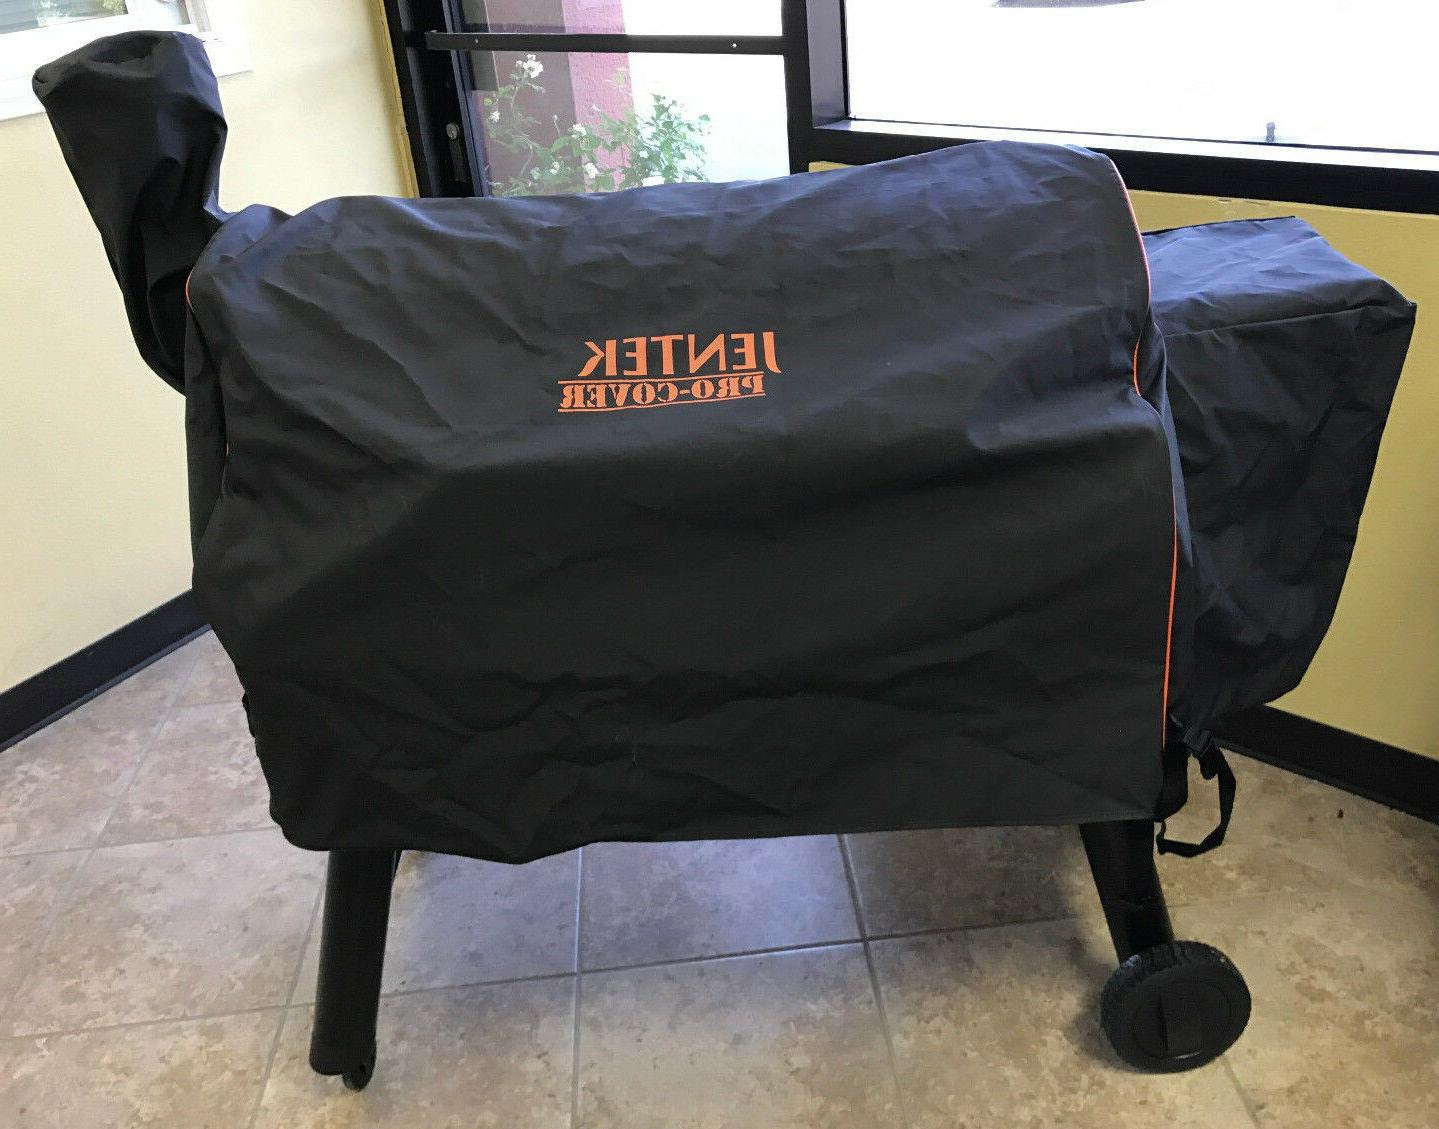 Jentek Replacement Grill Cover For Traeger Texas Pellet gril